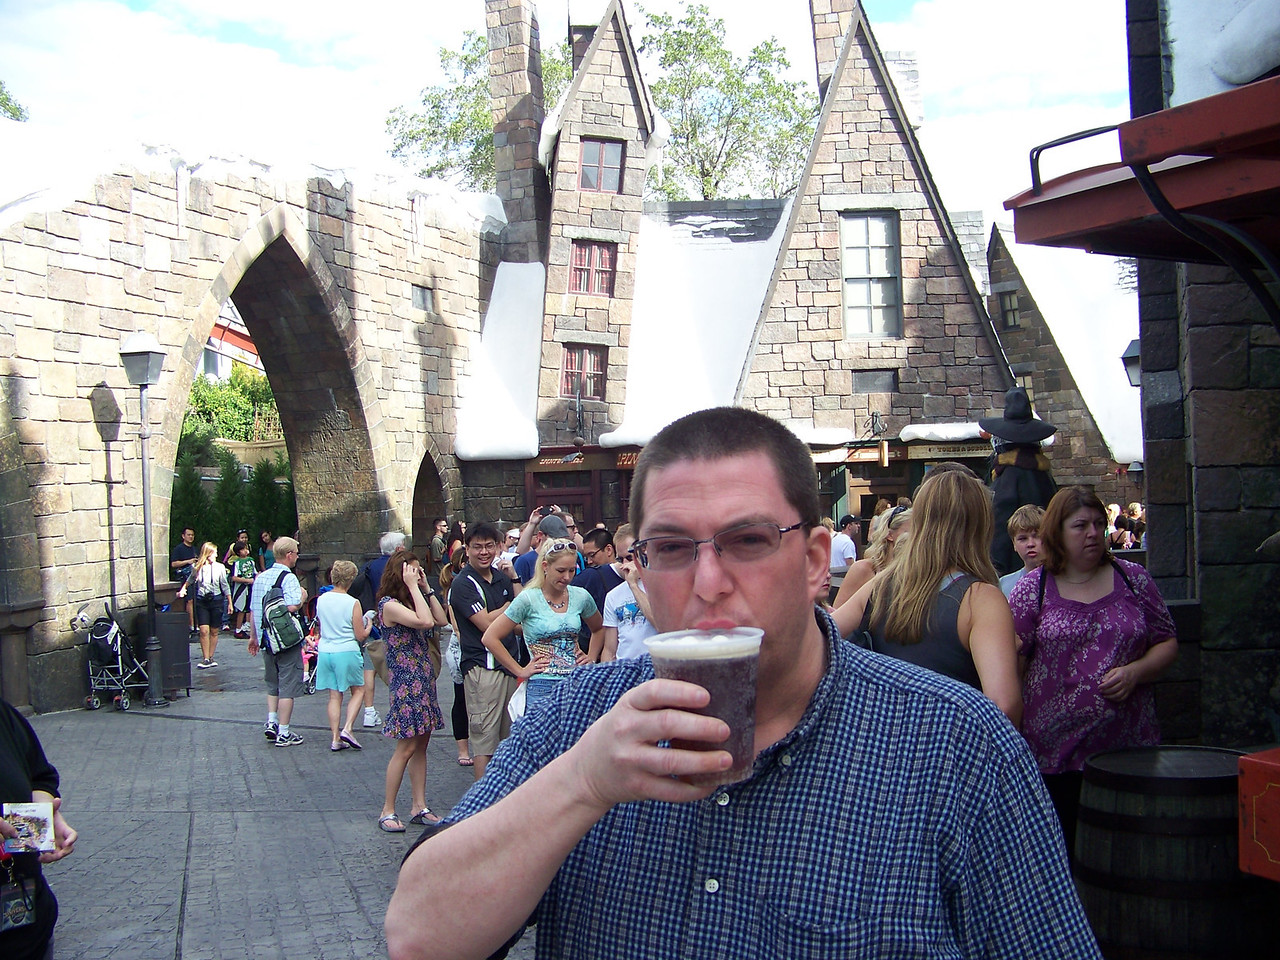 Jeff says yum!!!  Butterbeer was good.  Wish I could've tried the pumpkin juice they were selling, too!<br /> [Universal Islands of Adventure - Wizarding World of Harry Potter]